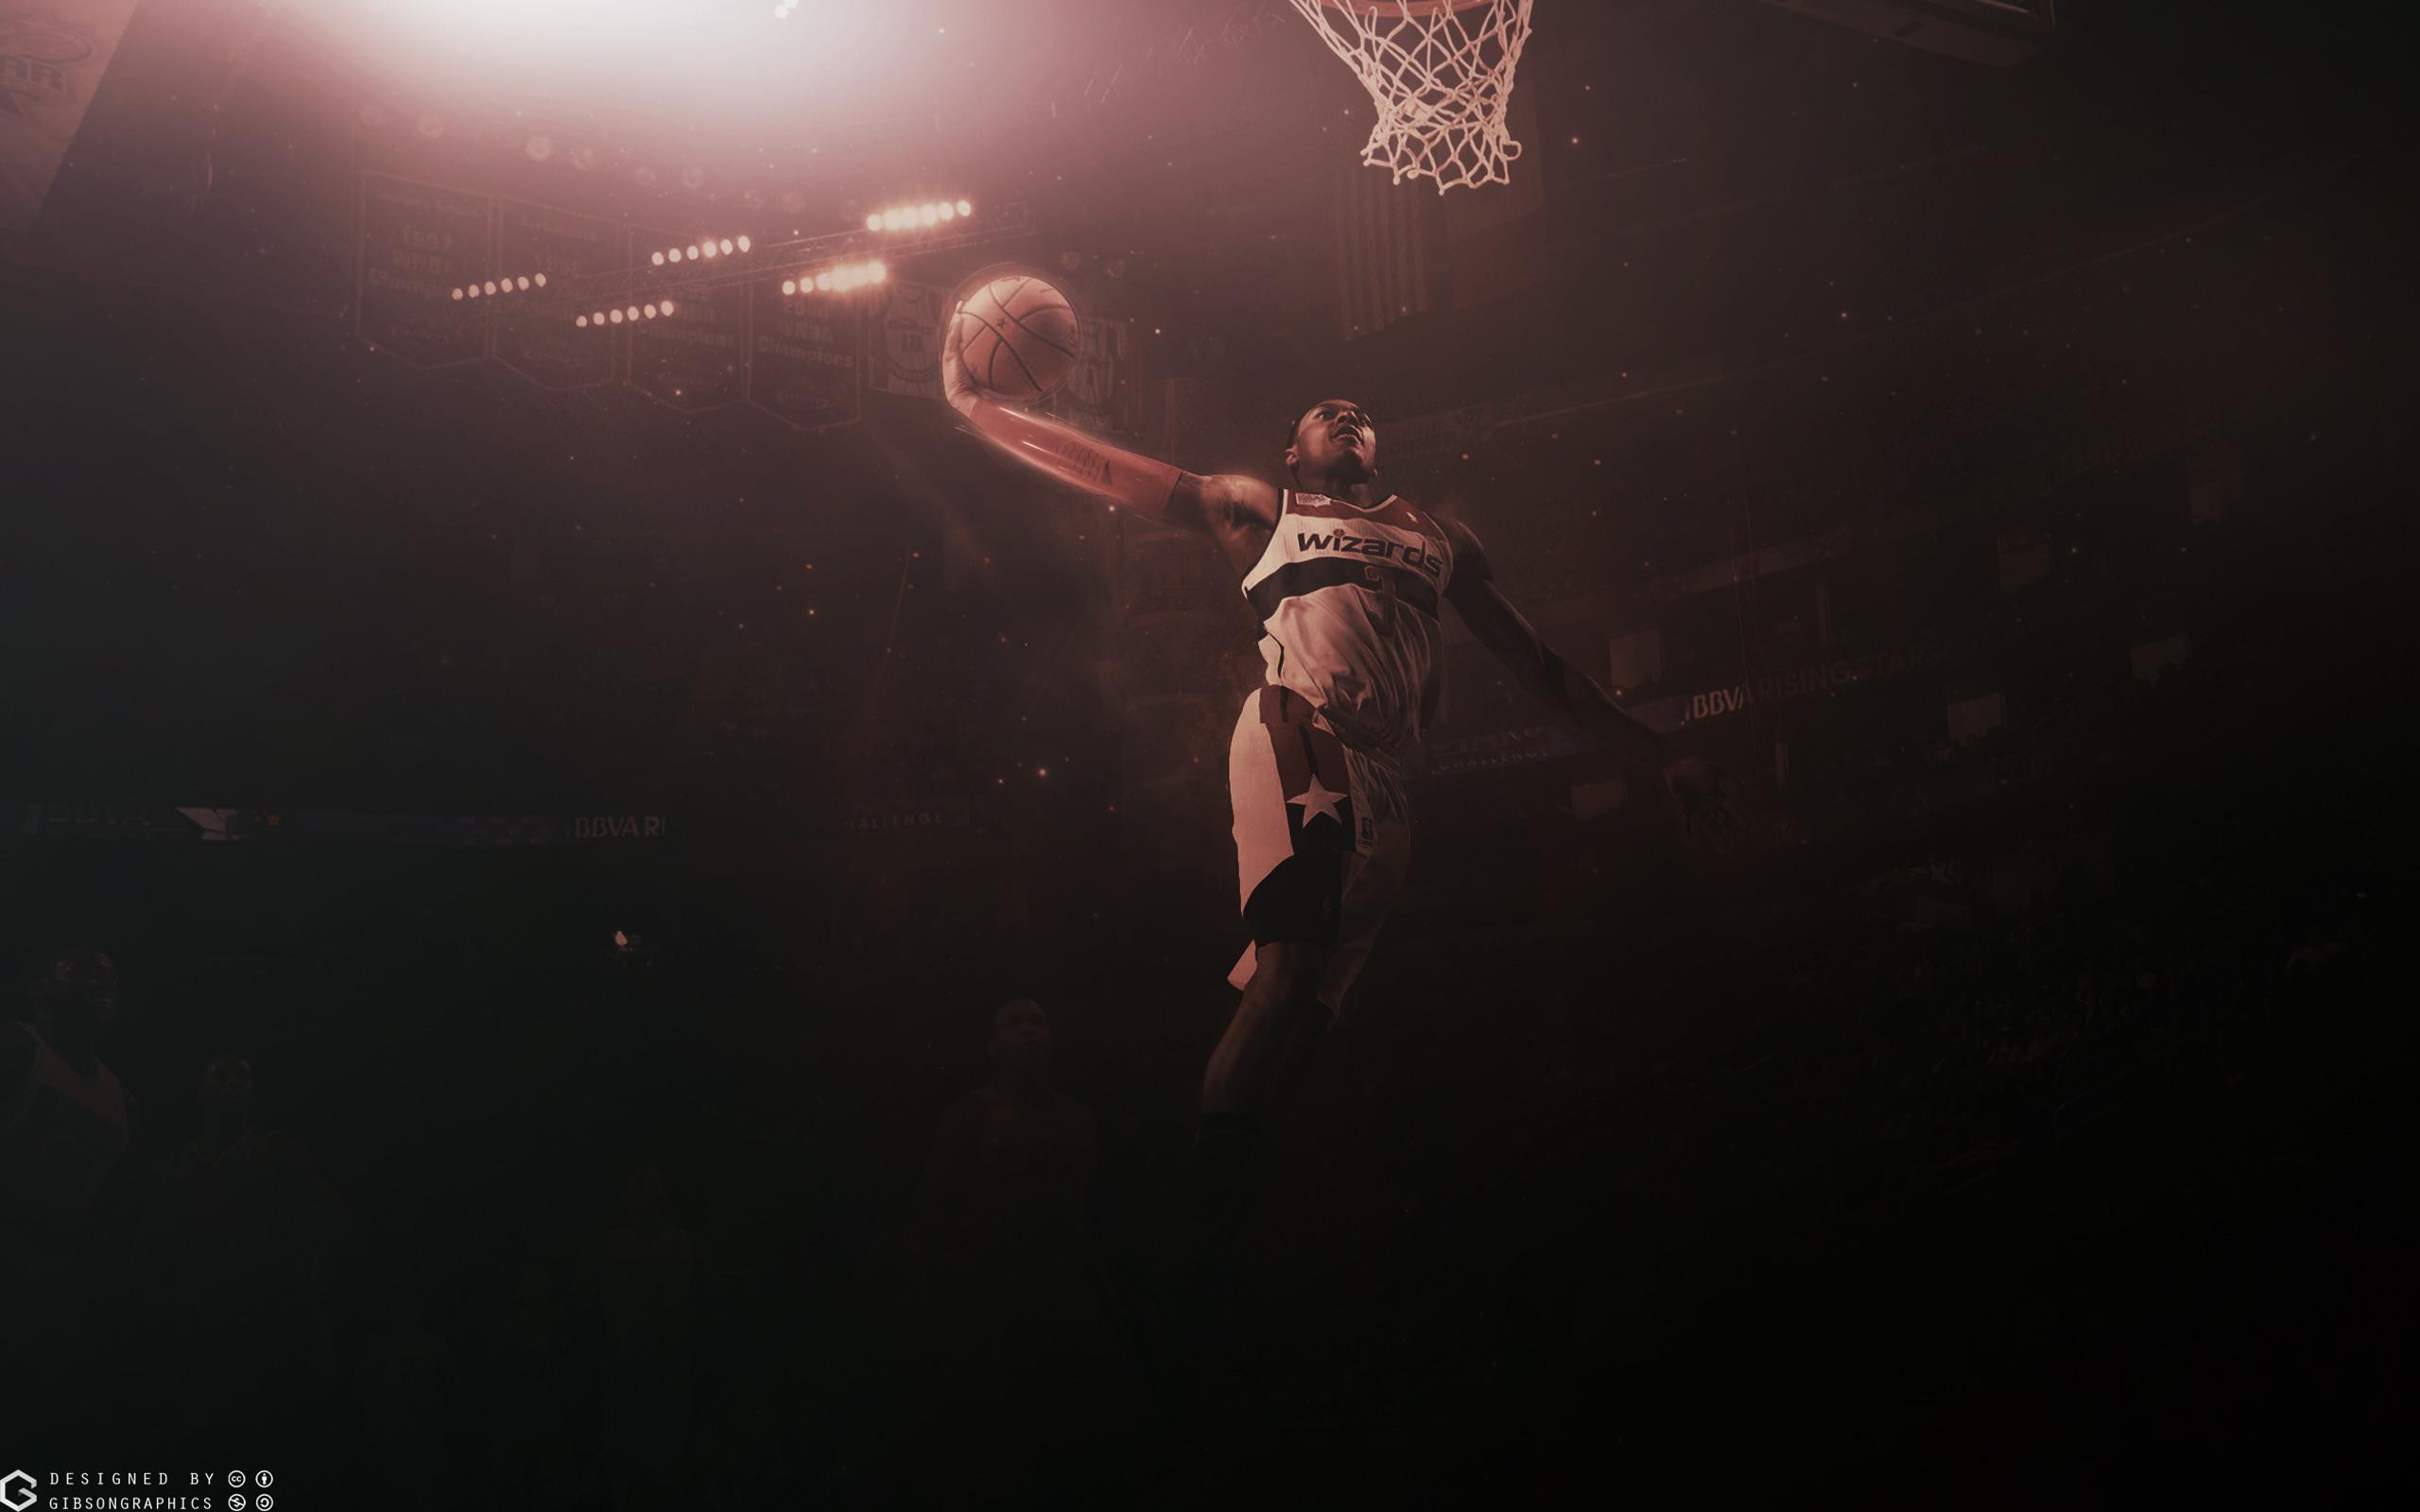 Bradley Beal Wizards Dunk 2015 Wallpaper